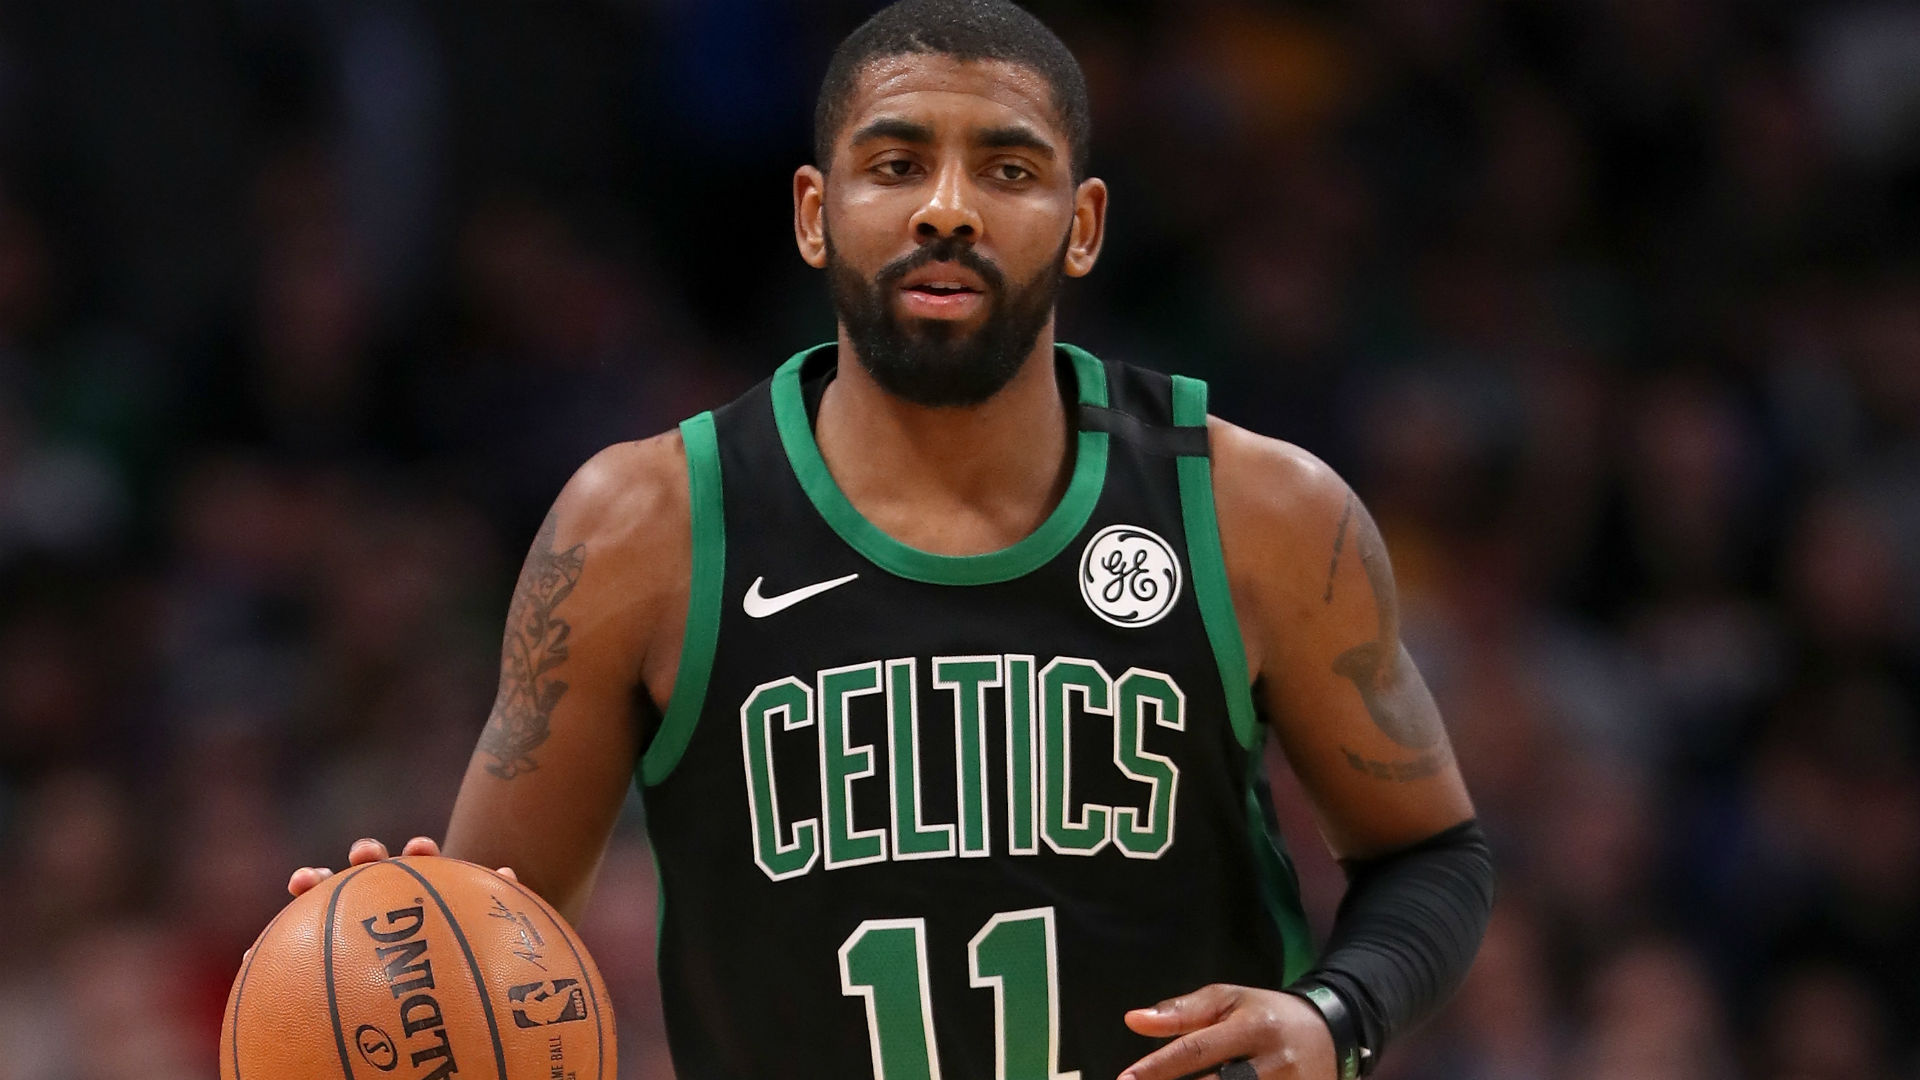 Image Result For Kyrie Irving Kyrieirving Twitter